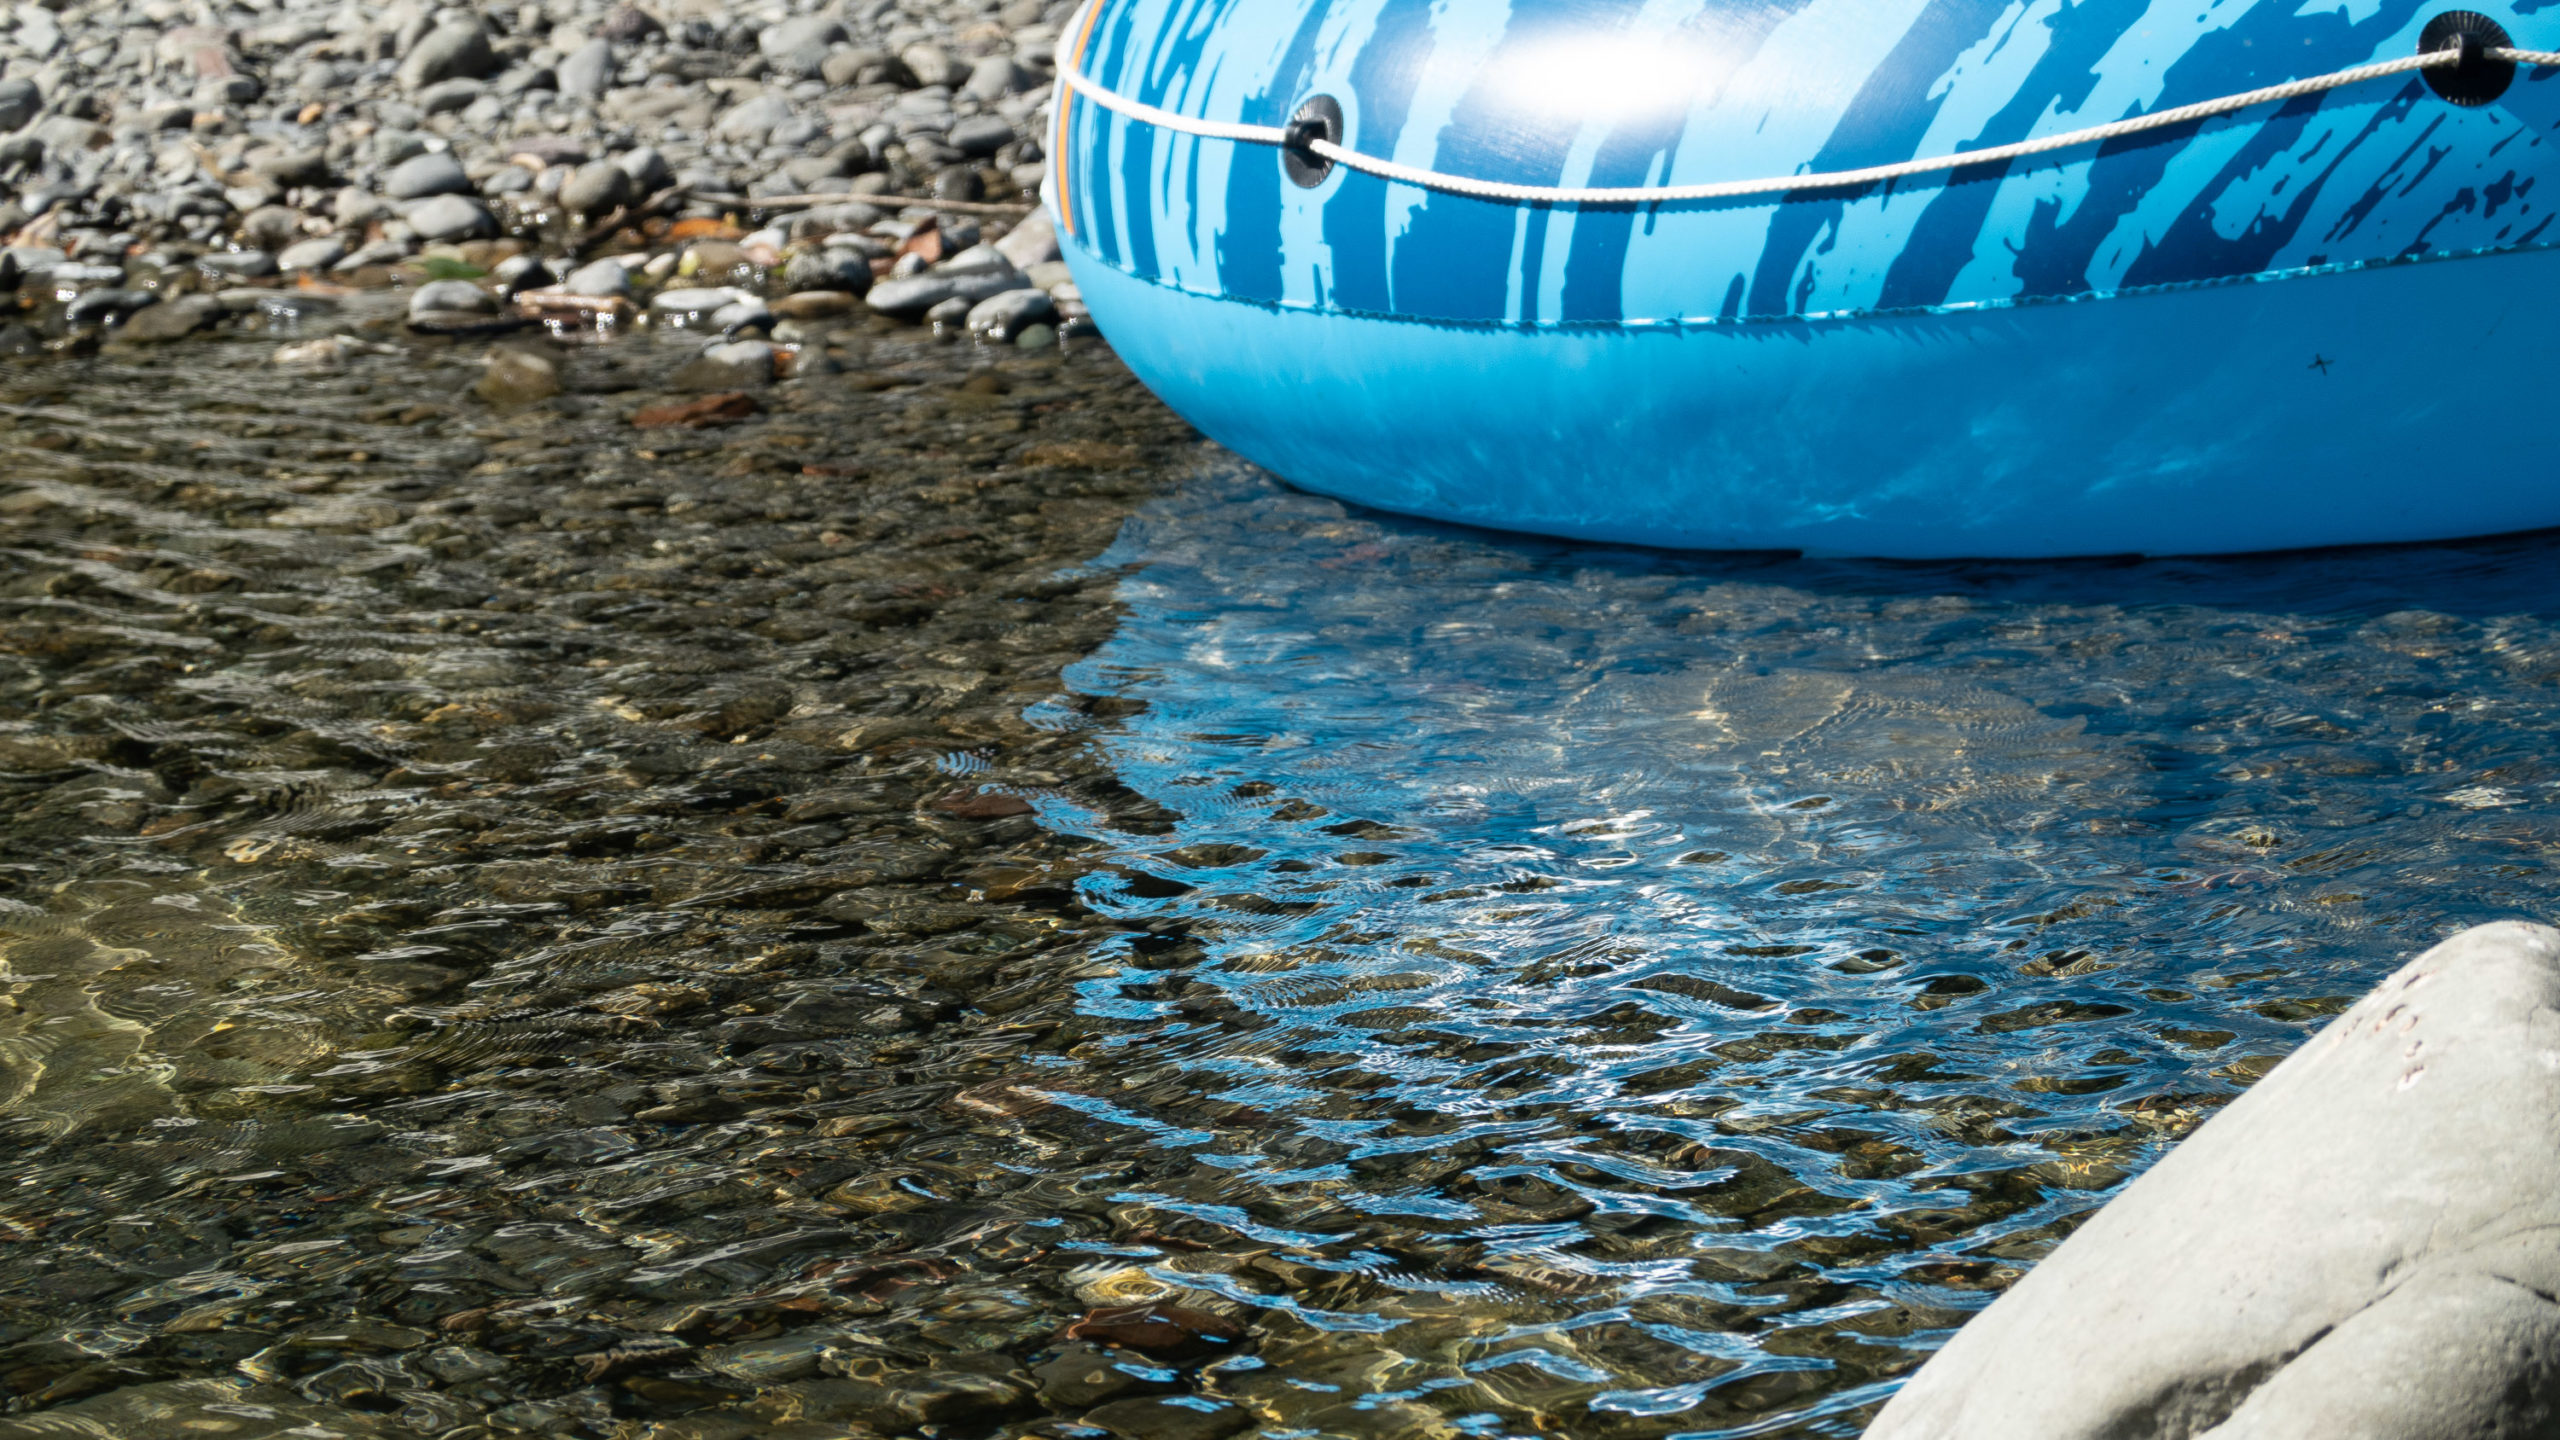 an inflatable inner tube on rippling creek waves